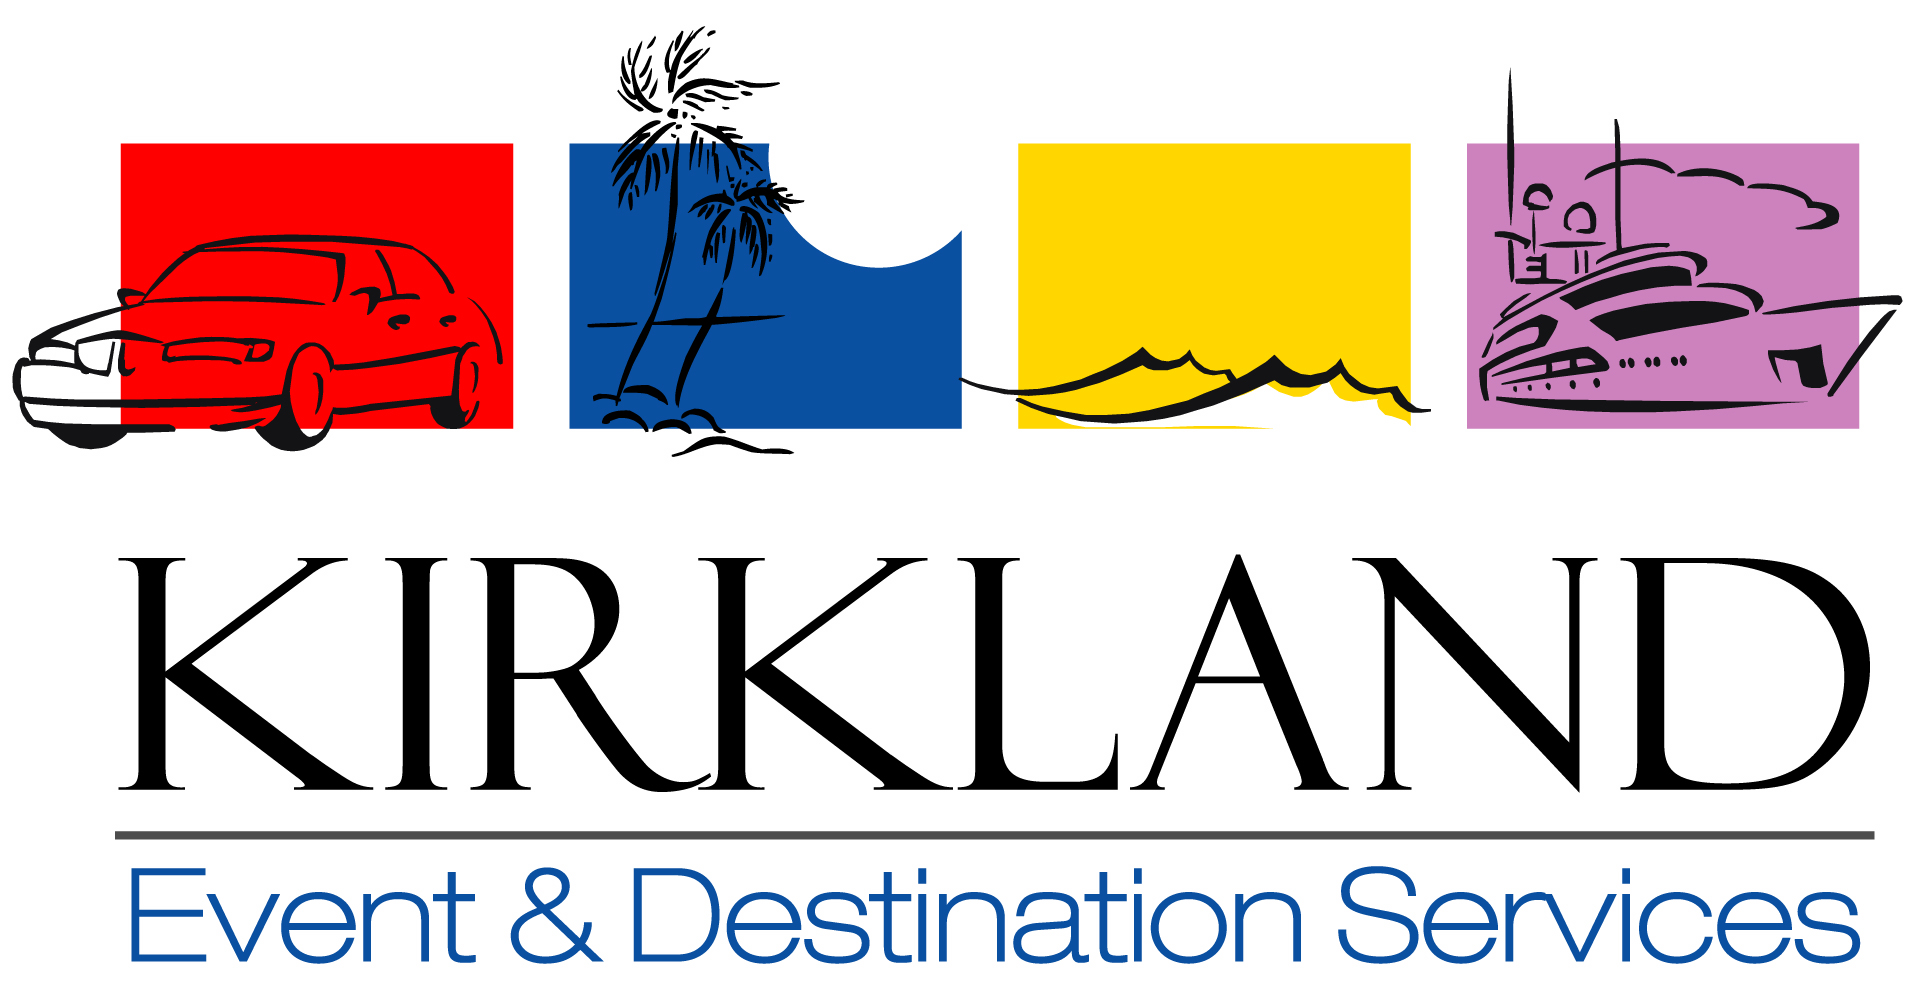 Kirkland Event & Destination Services